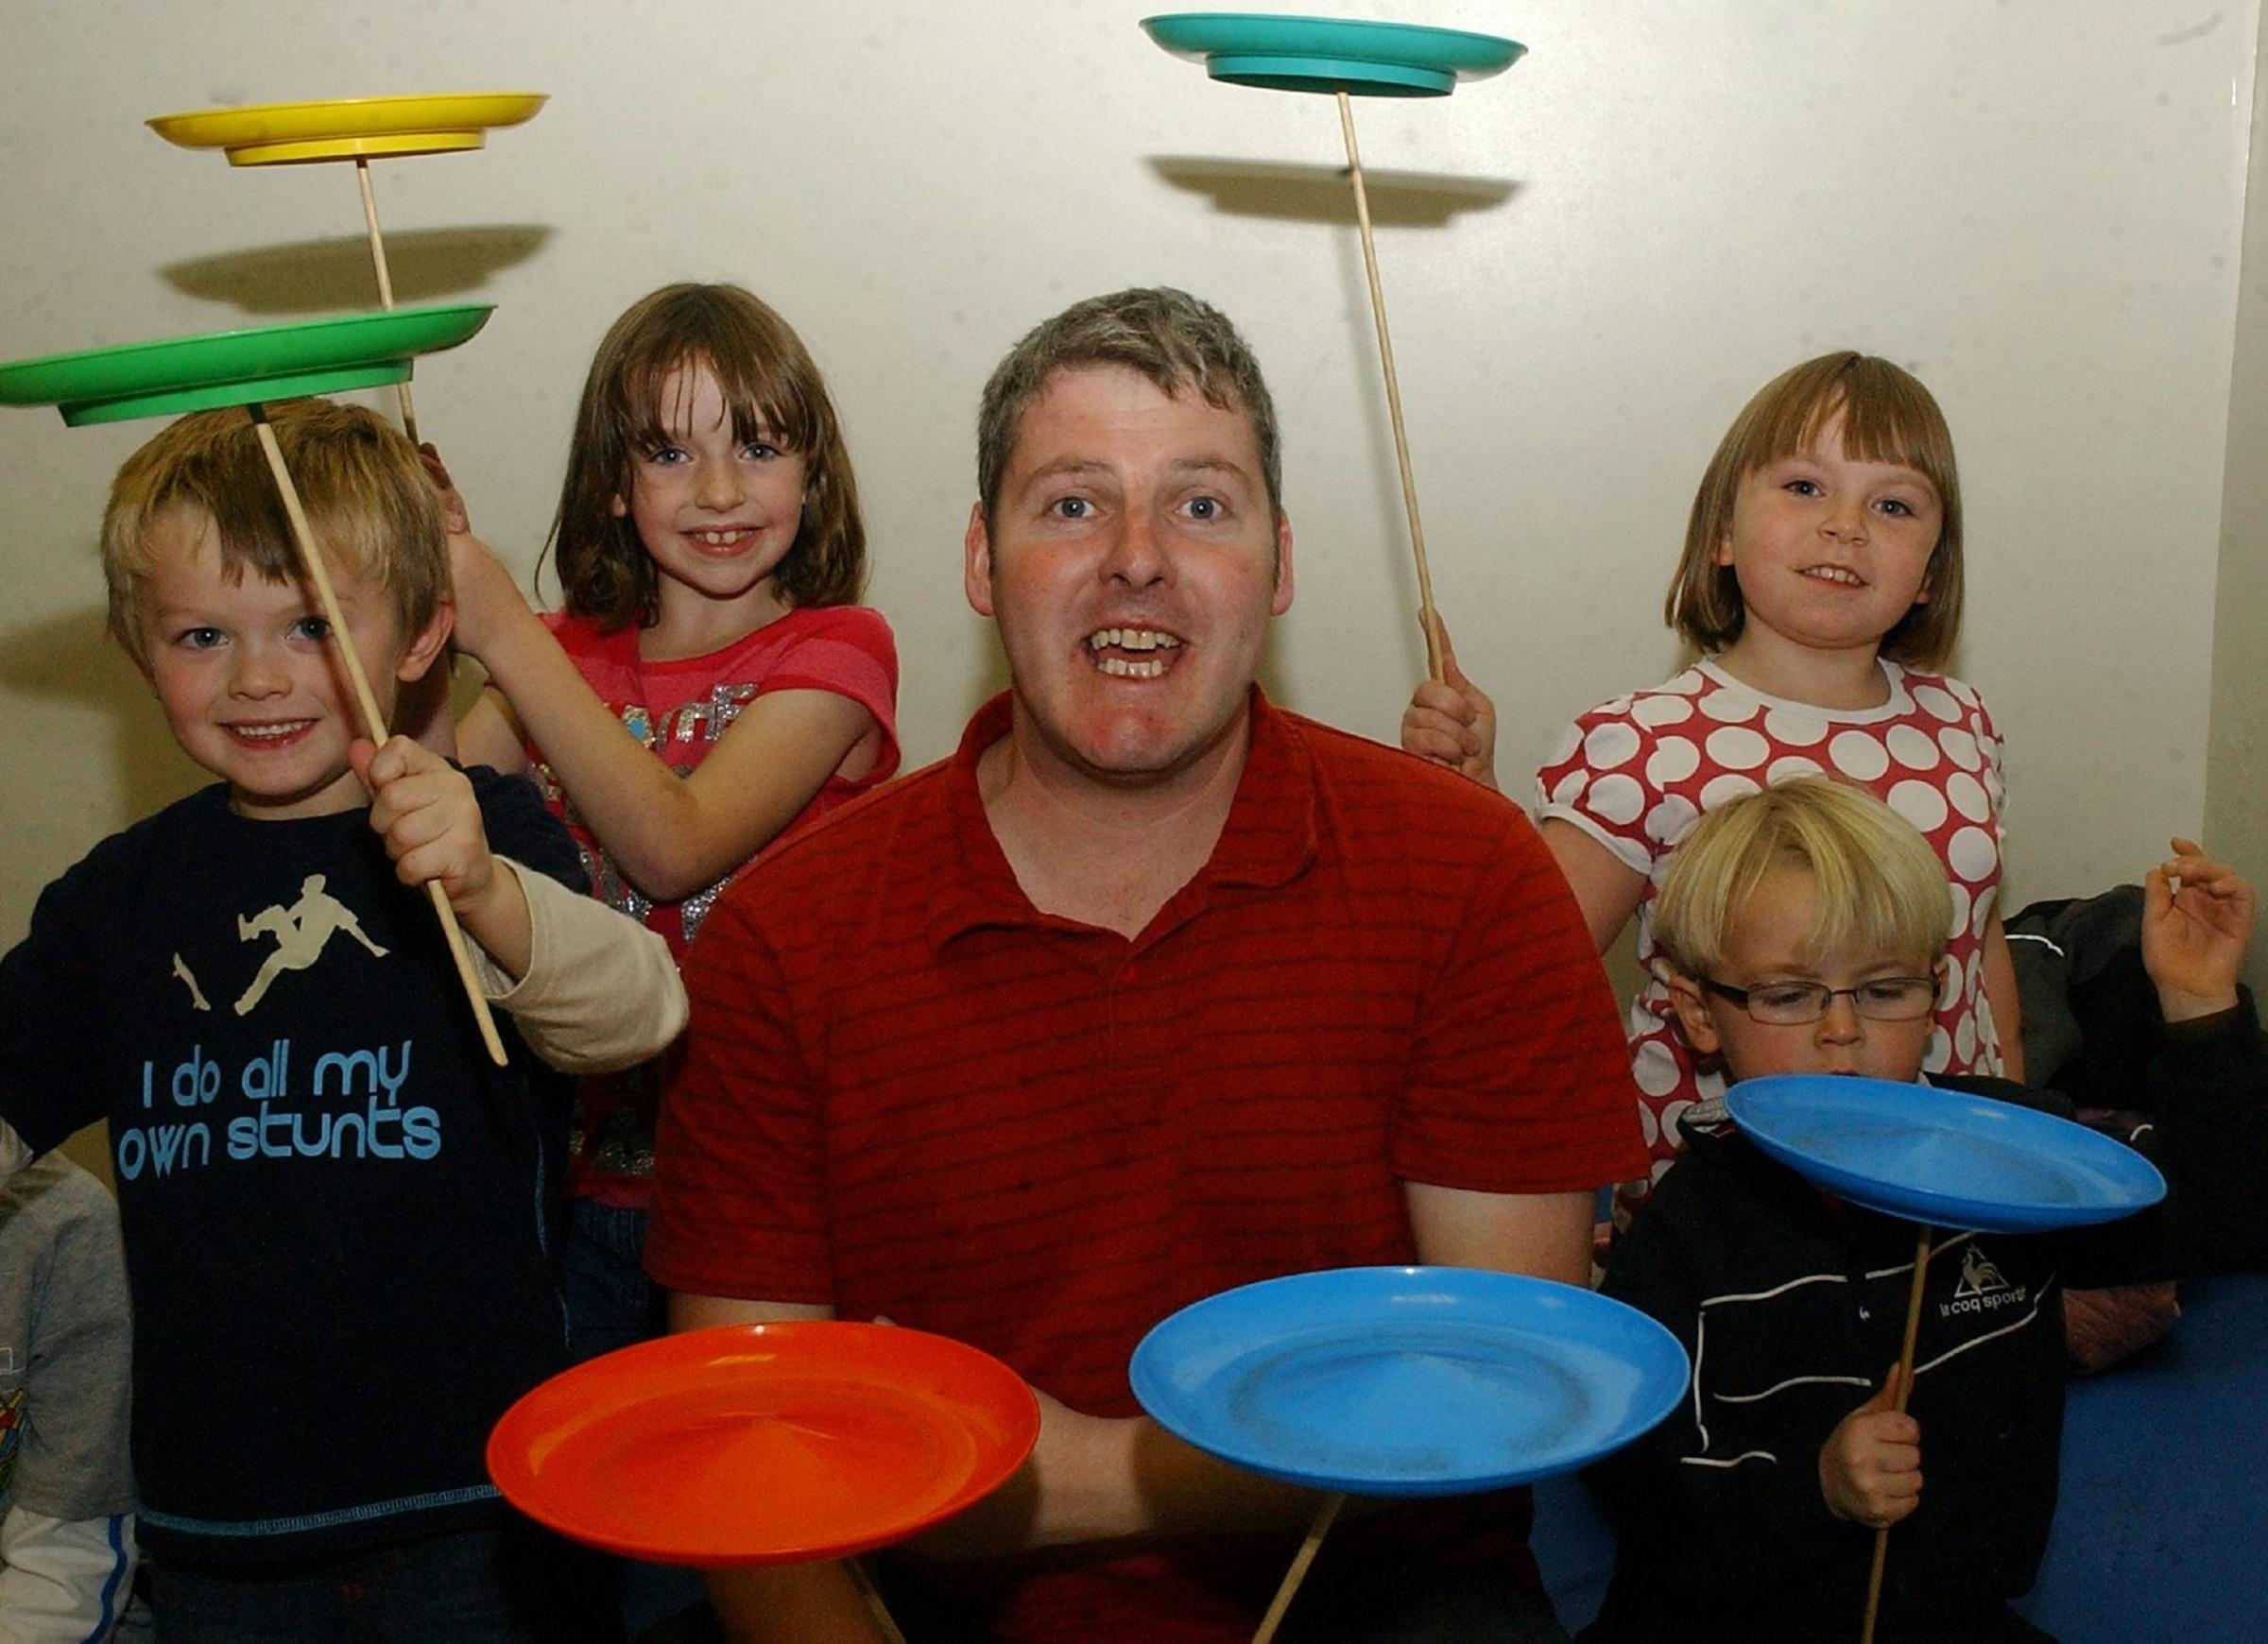 Fun: Gary Gifford, of Bread and Butter Theatre, hosting a circus skils session at the Millom Children's Learning Centre in 2008